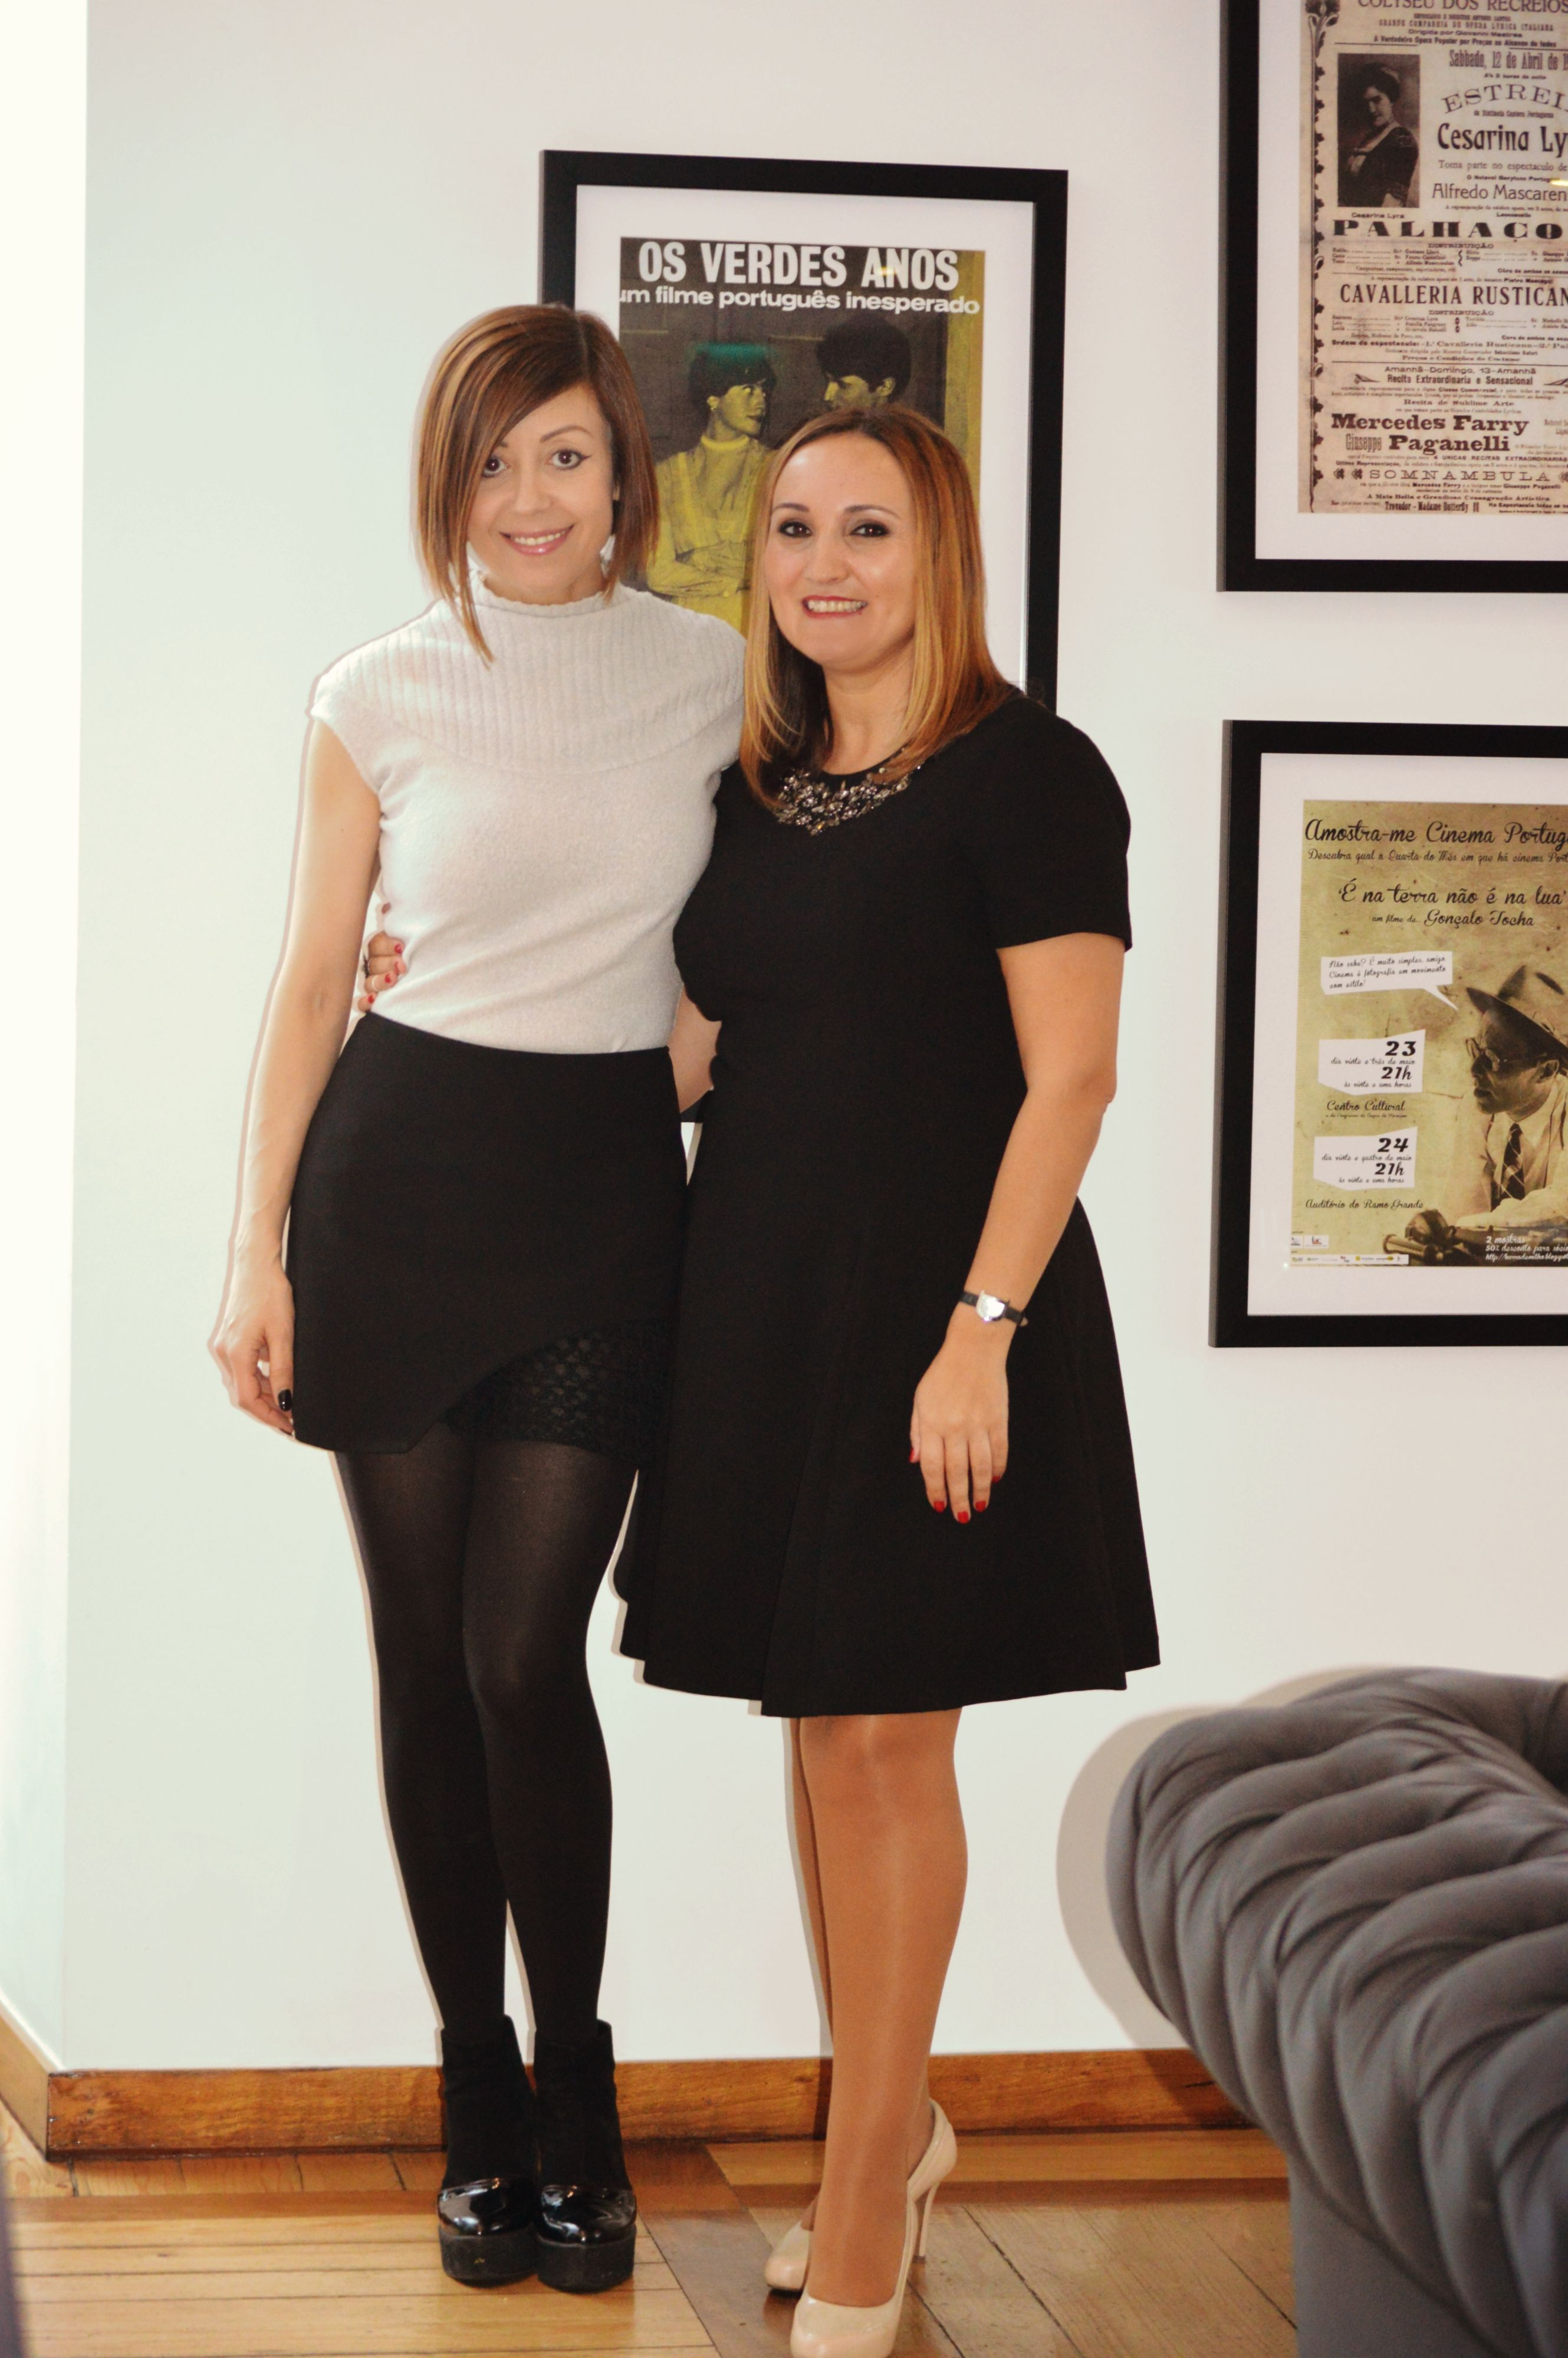 with my friend and fashion designer fátima lopes  6th